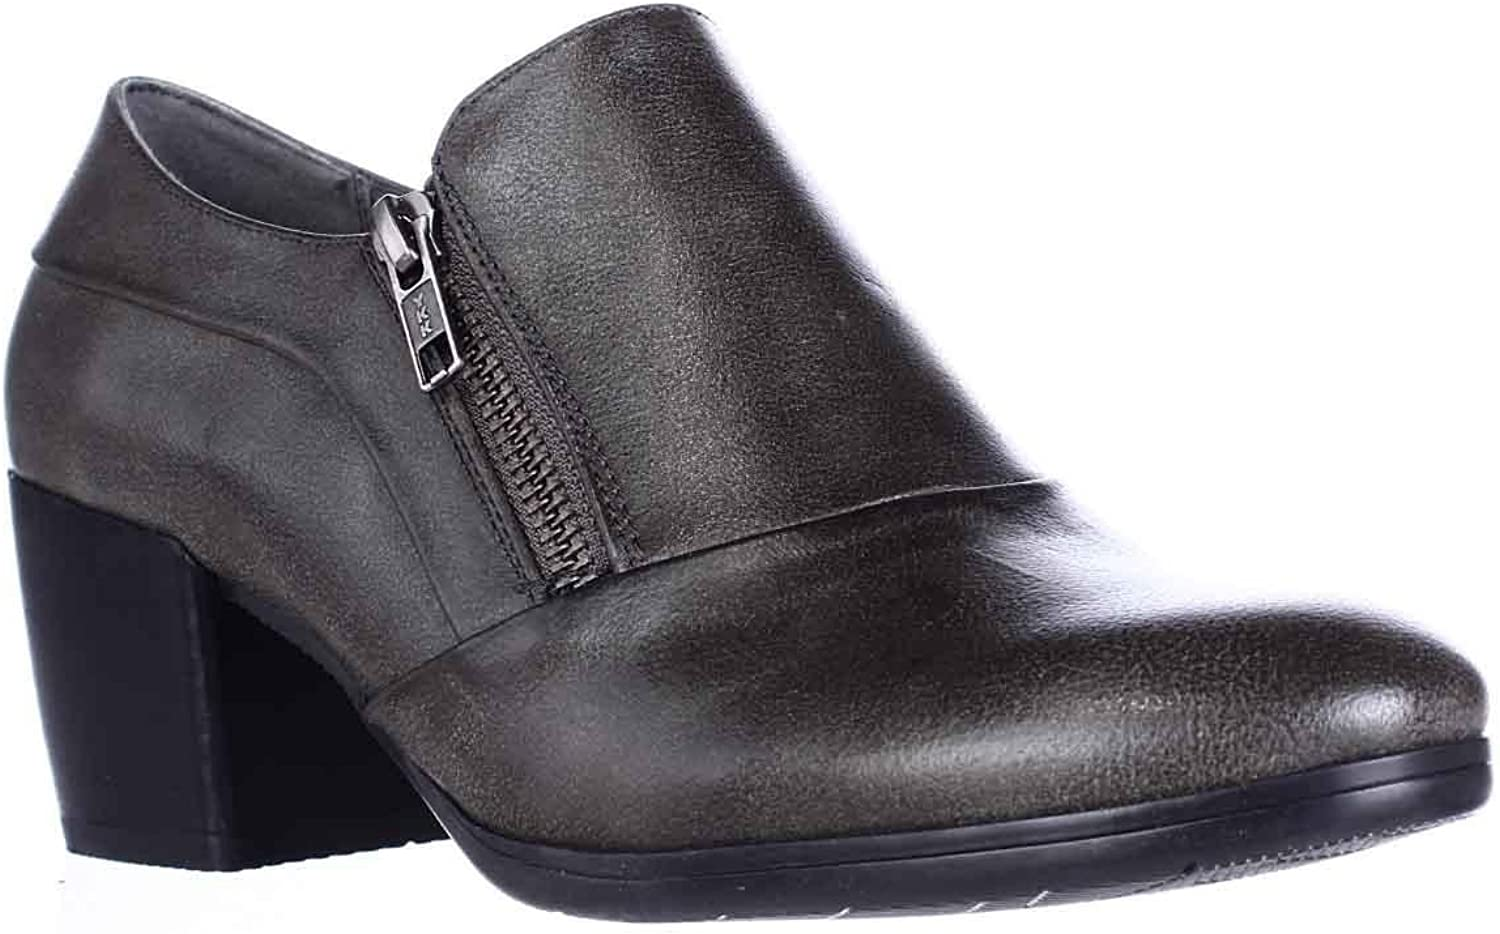 Bare Traps Womens Kelyn Closed Toe Ankle Fashion Boots, Dark Grey, Size 6.0